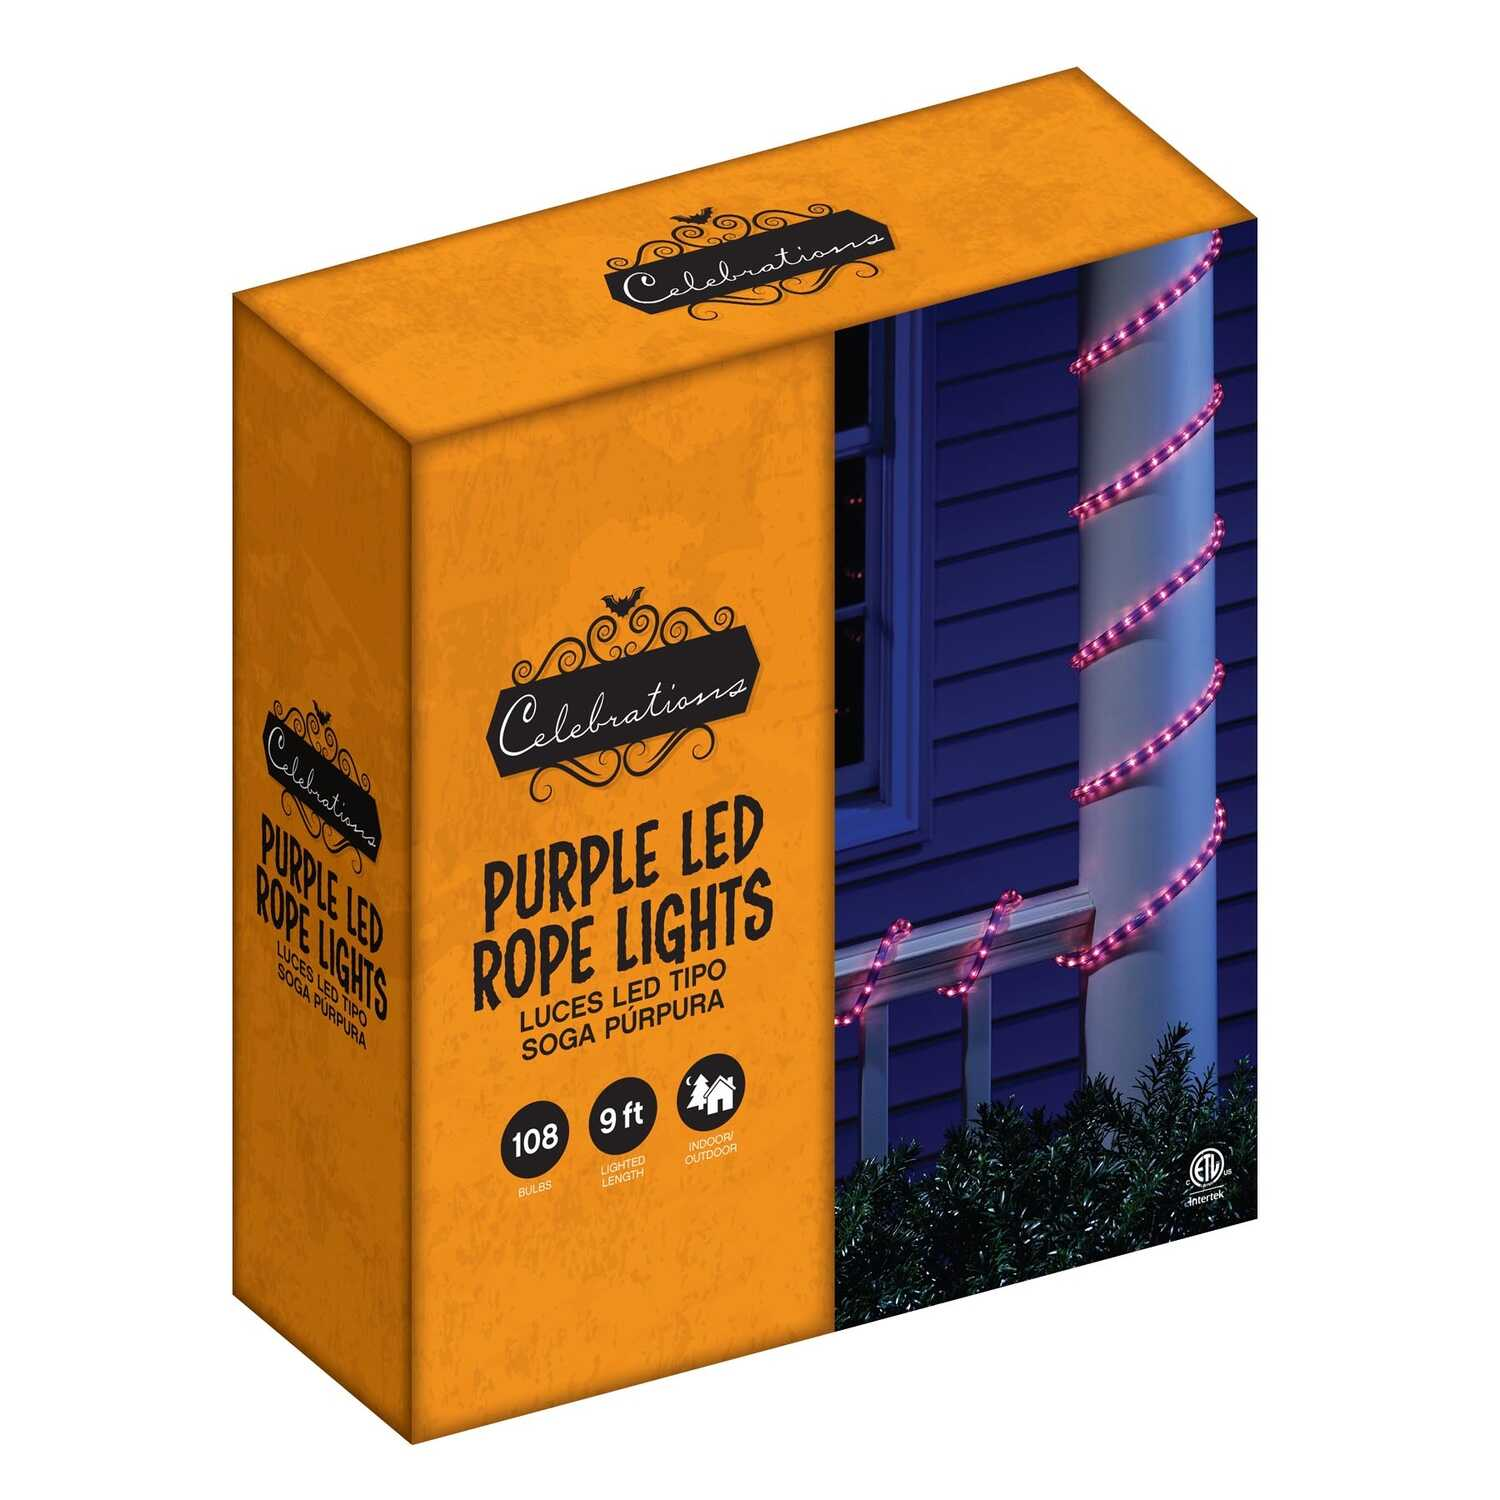 Celebrations  LED Rope  Lighted Purple  Halloween Lights  .5 in. H x 13 M W x 216 in. L 1 pk